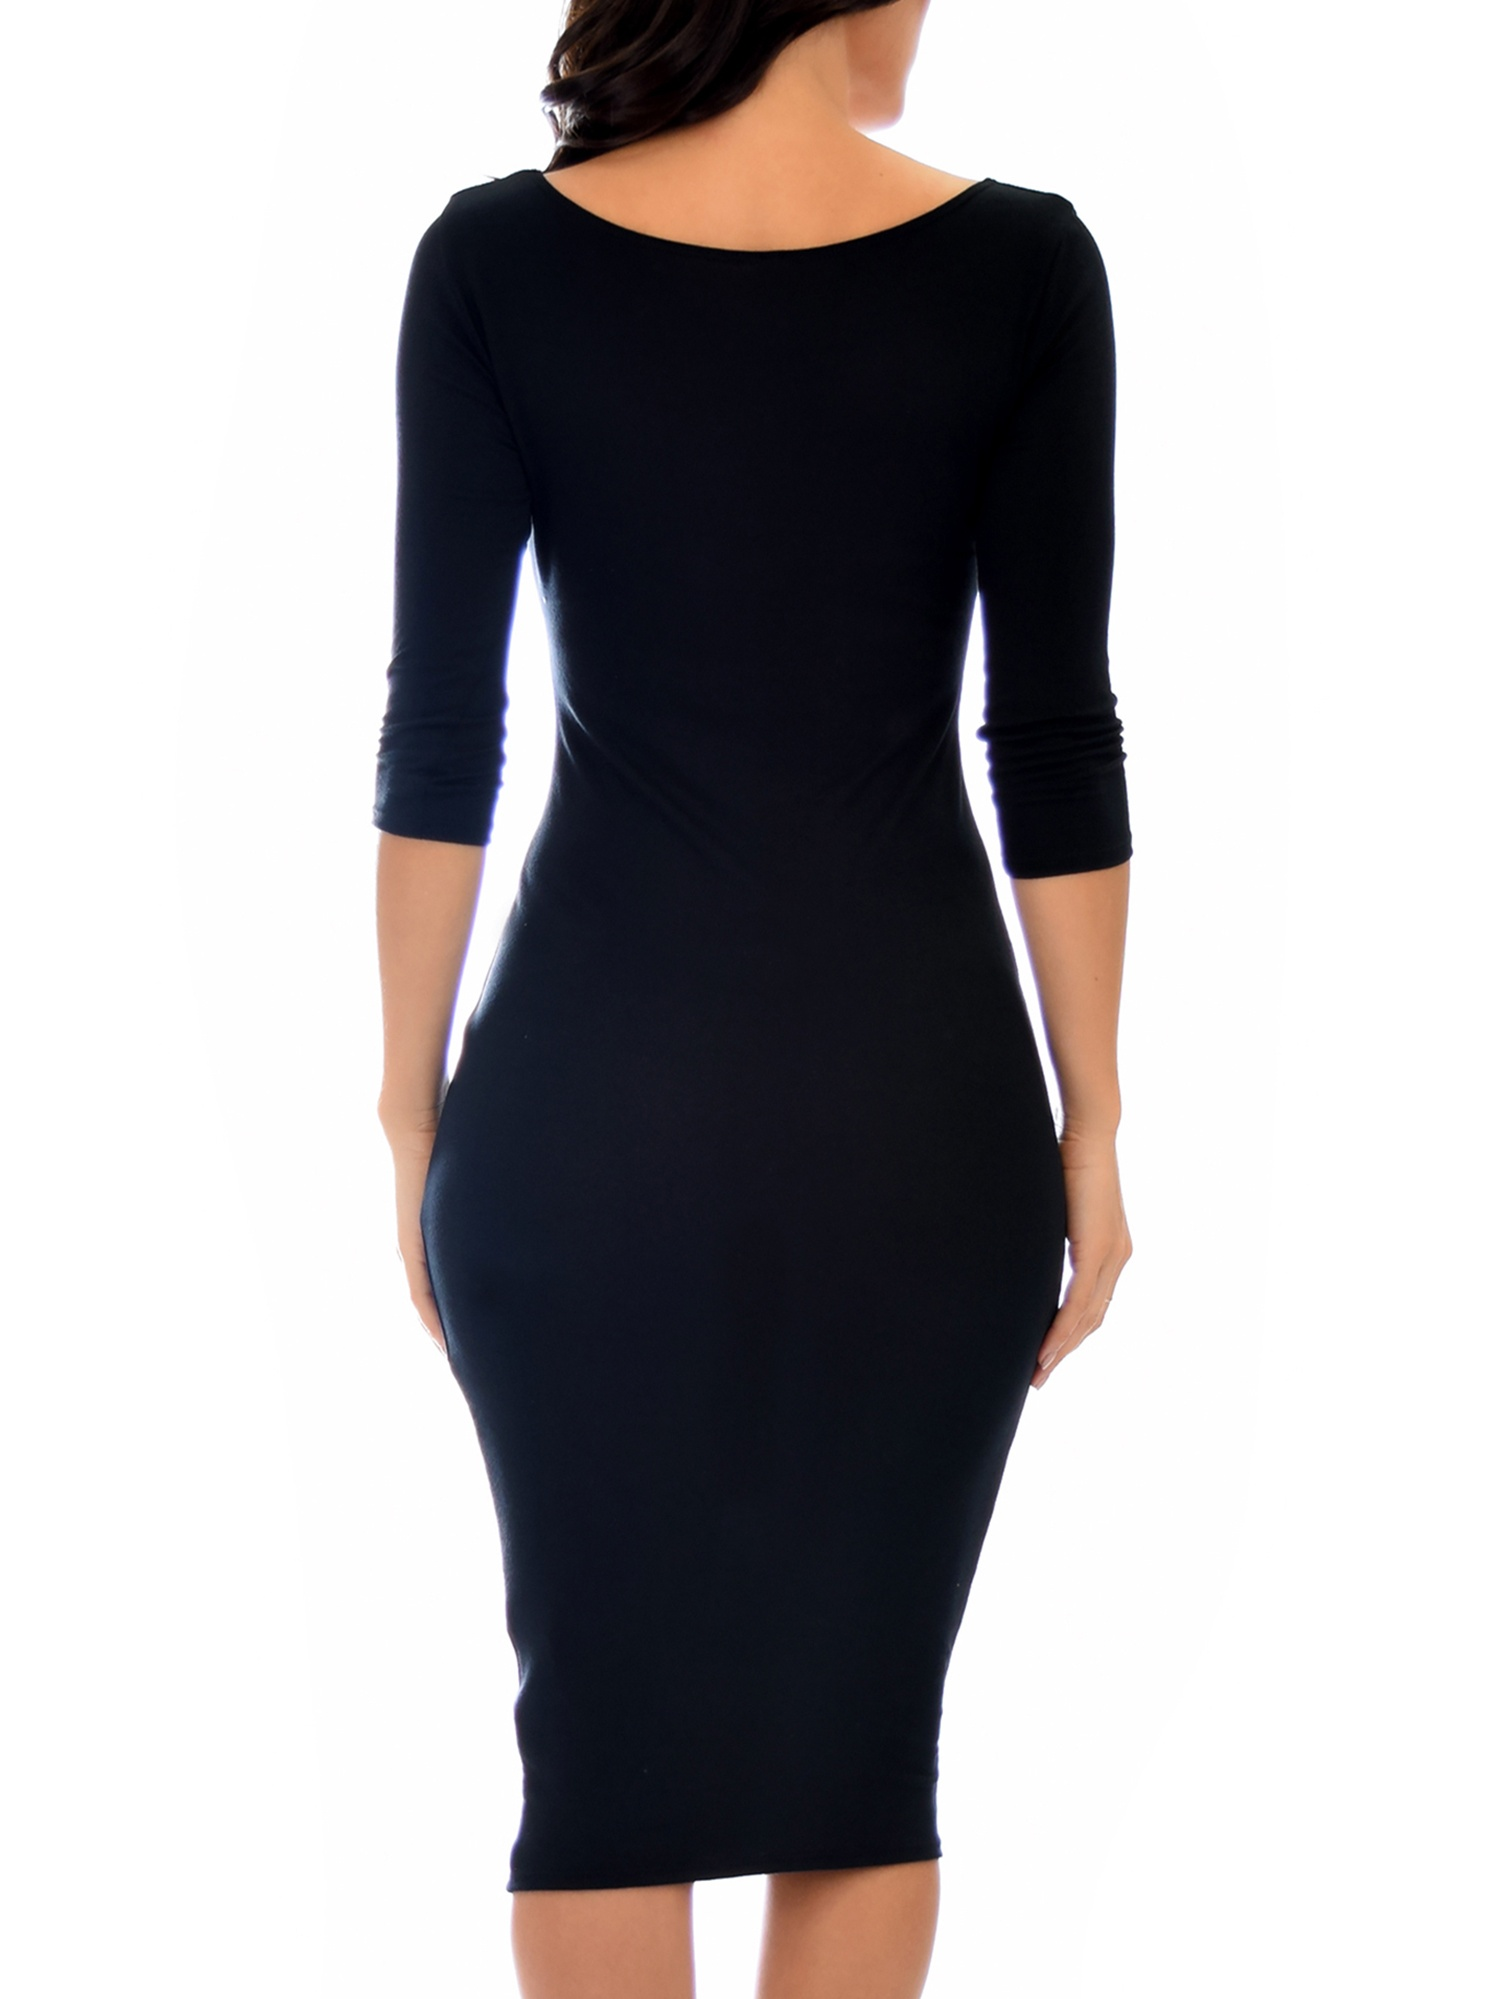 178bc81002b2 Lyss Loo - Lyss Loo Women's True 2 You 3/4 Sleeve Midi Dress - Walmart.com